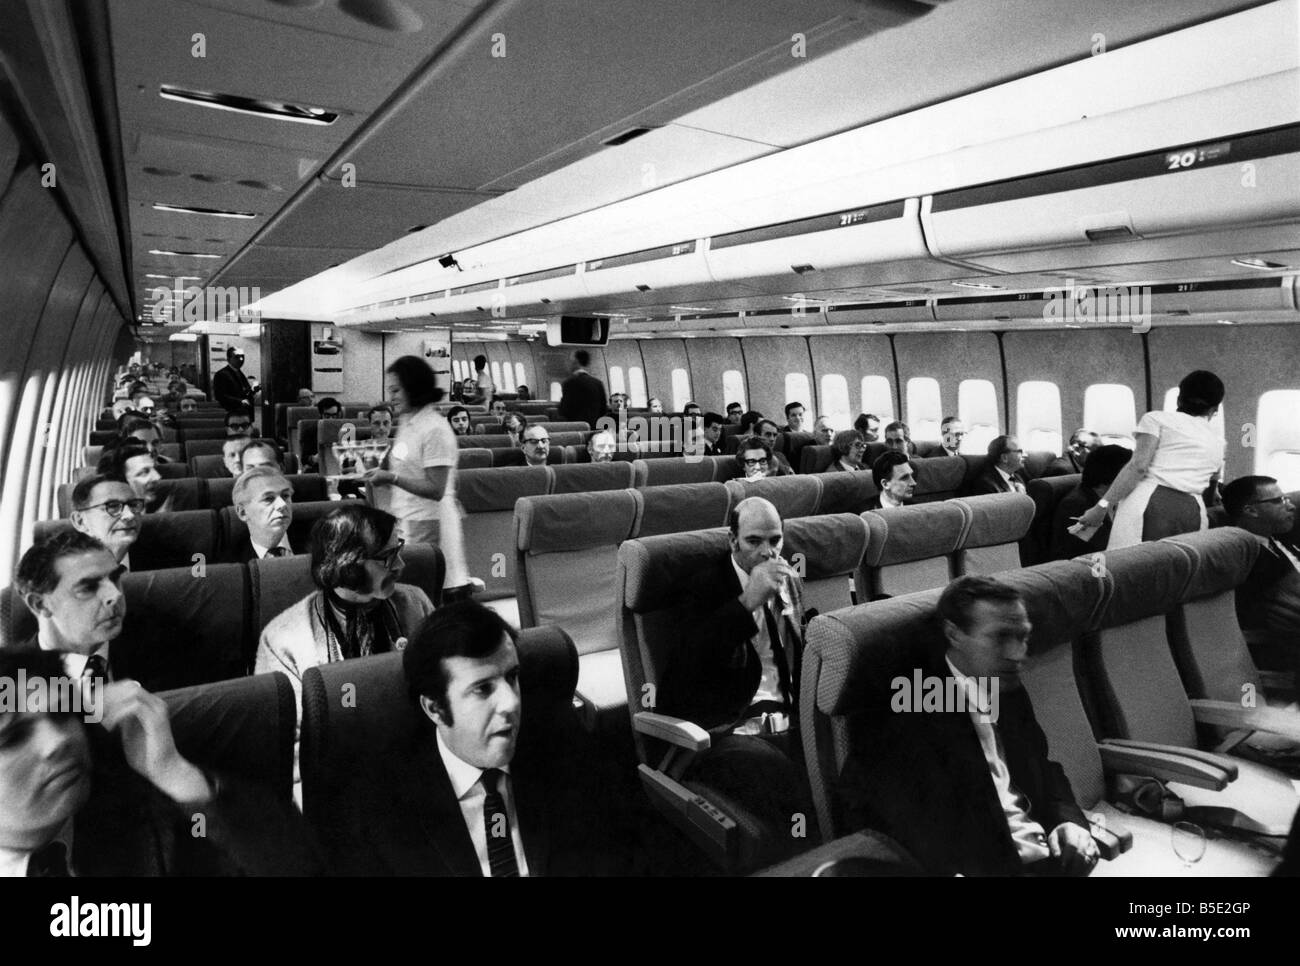 The huge interior of the Boeing 747 jumbo jet, after its arrival at ...